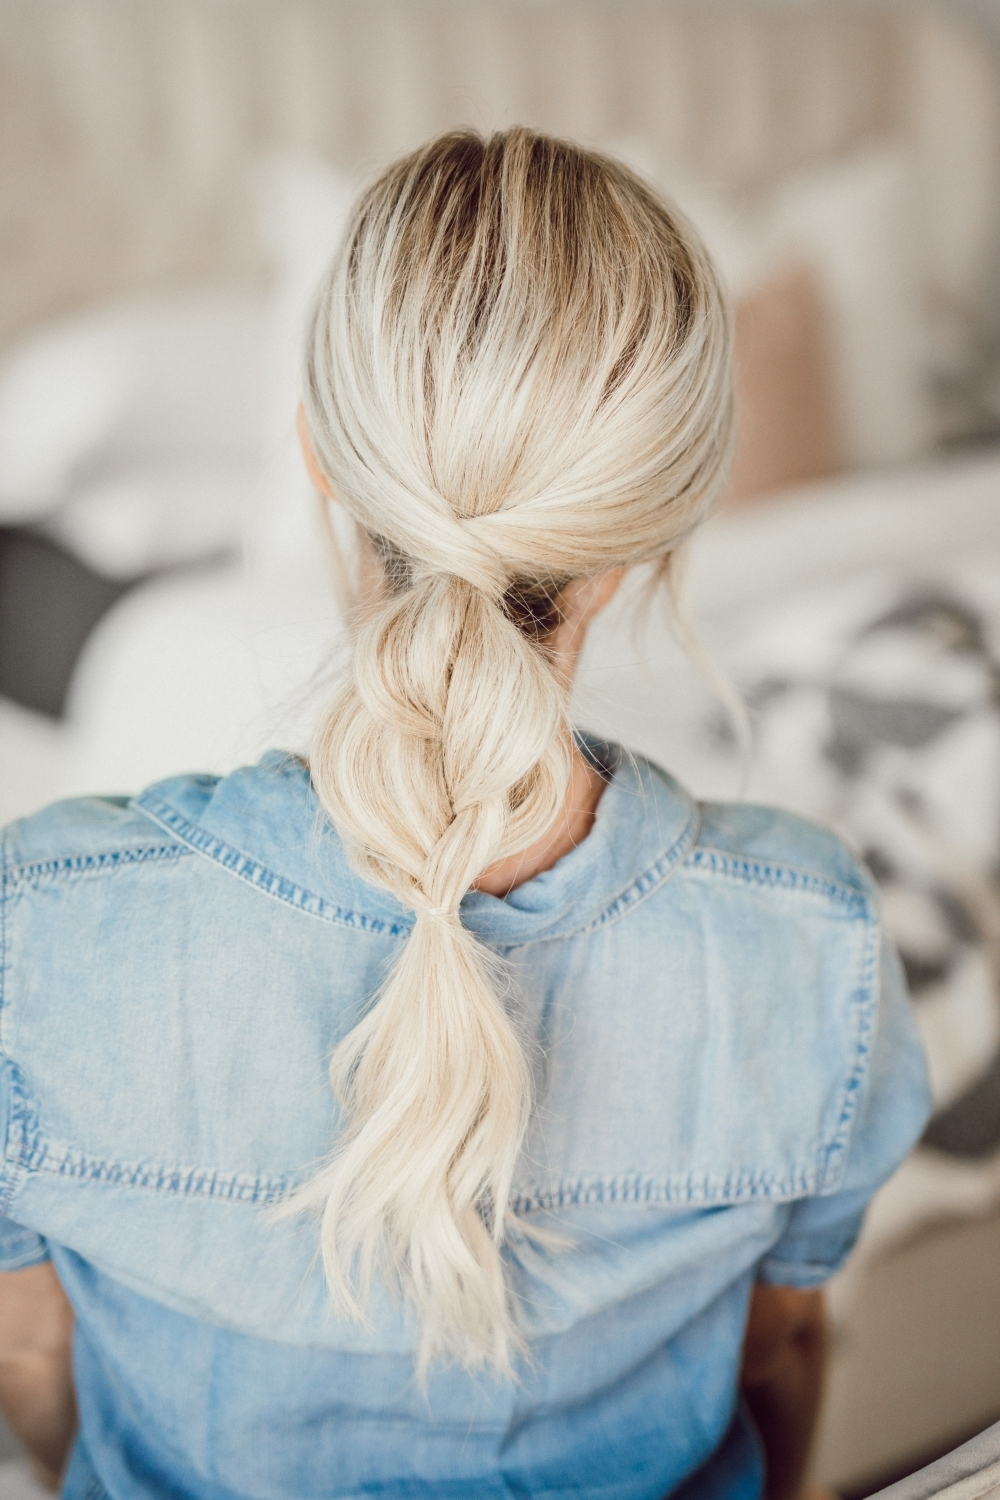 Ponytail Hairstyles For Spring And Summer!! Intended For Most Popular Low Twisted Flip In Ponytail Hairstyles (View 17 of 20)